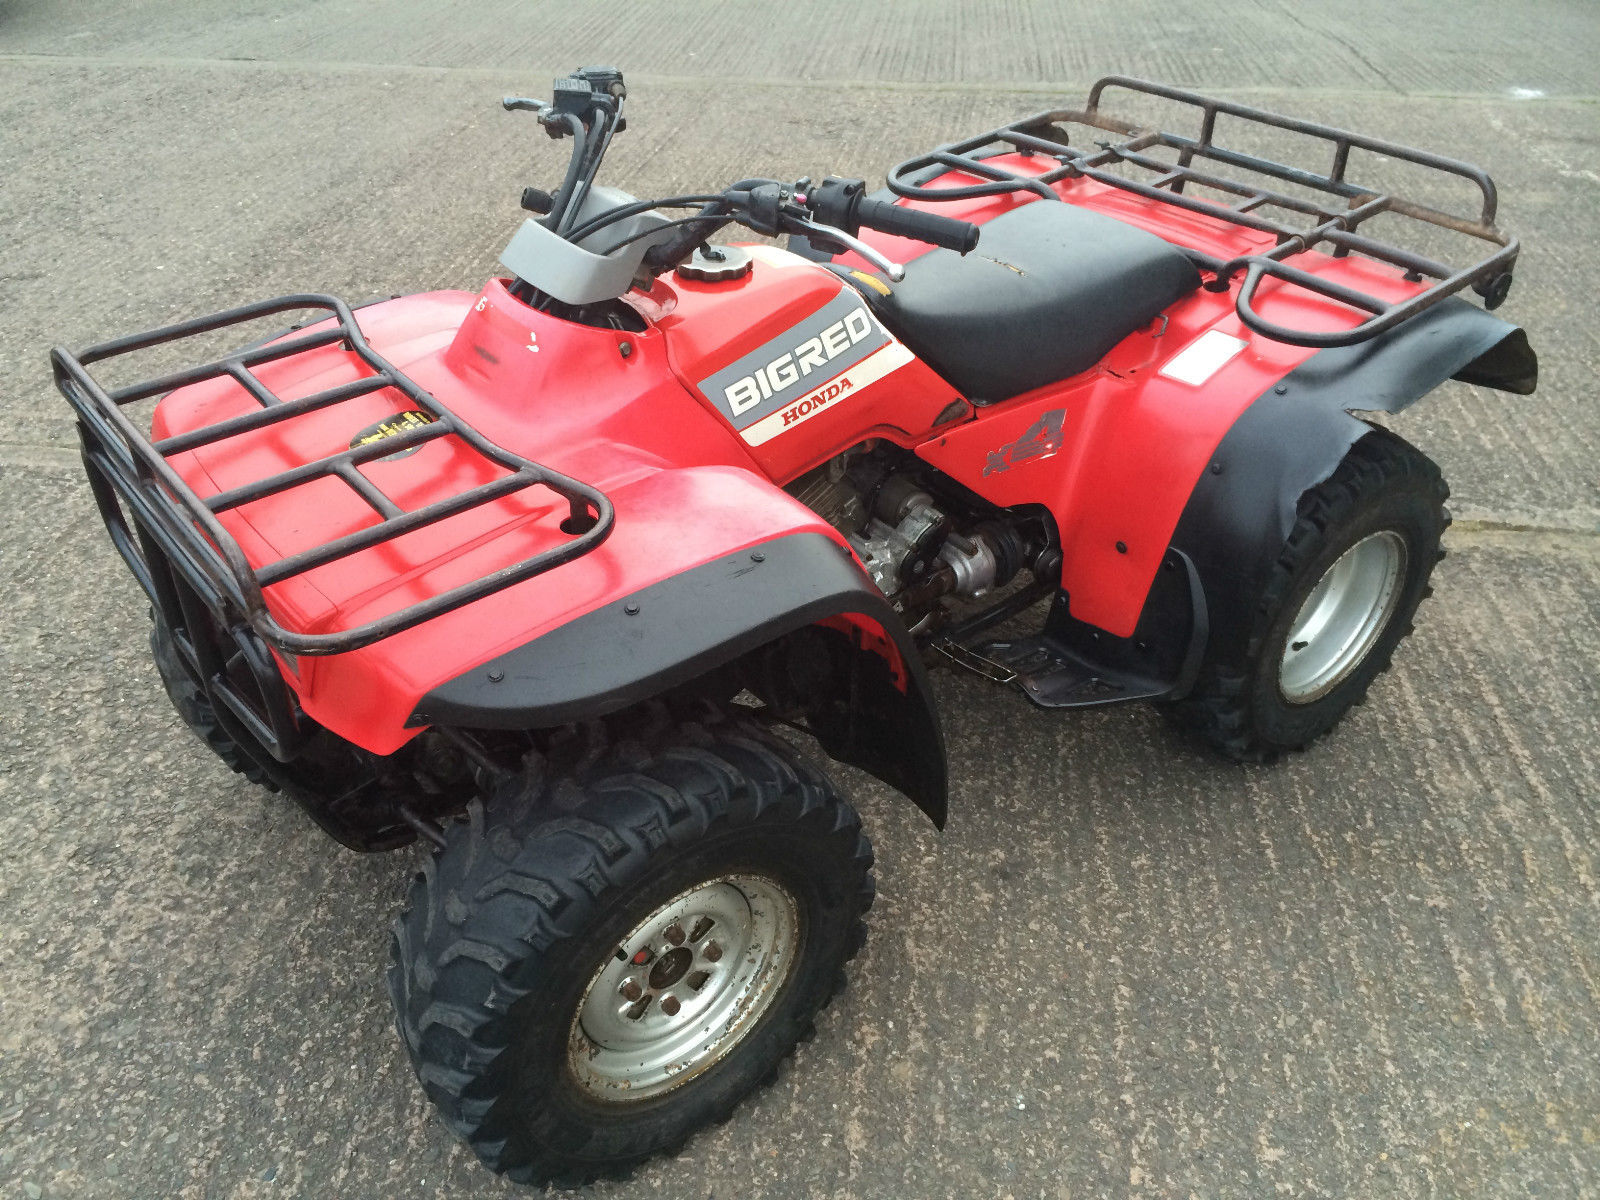 Images of 4x4 Quad Honda. 2003 Honda TRX350TE FOURTRAX 350 ES OWNER'S